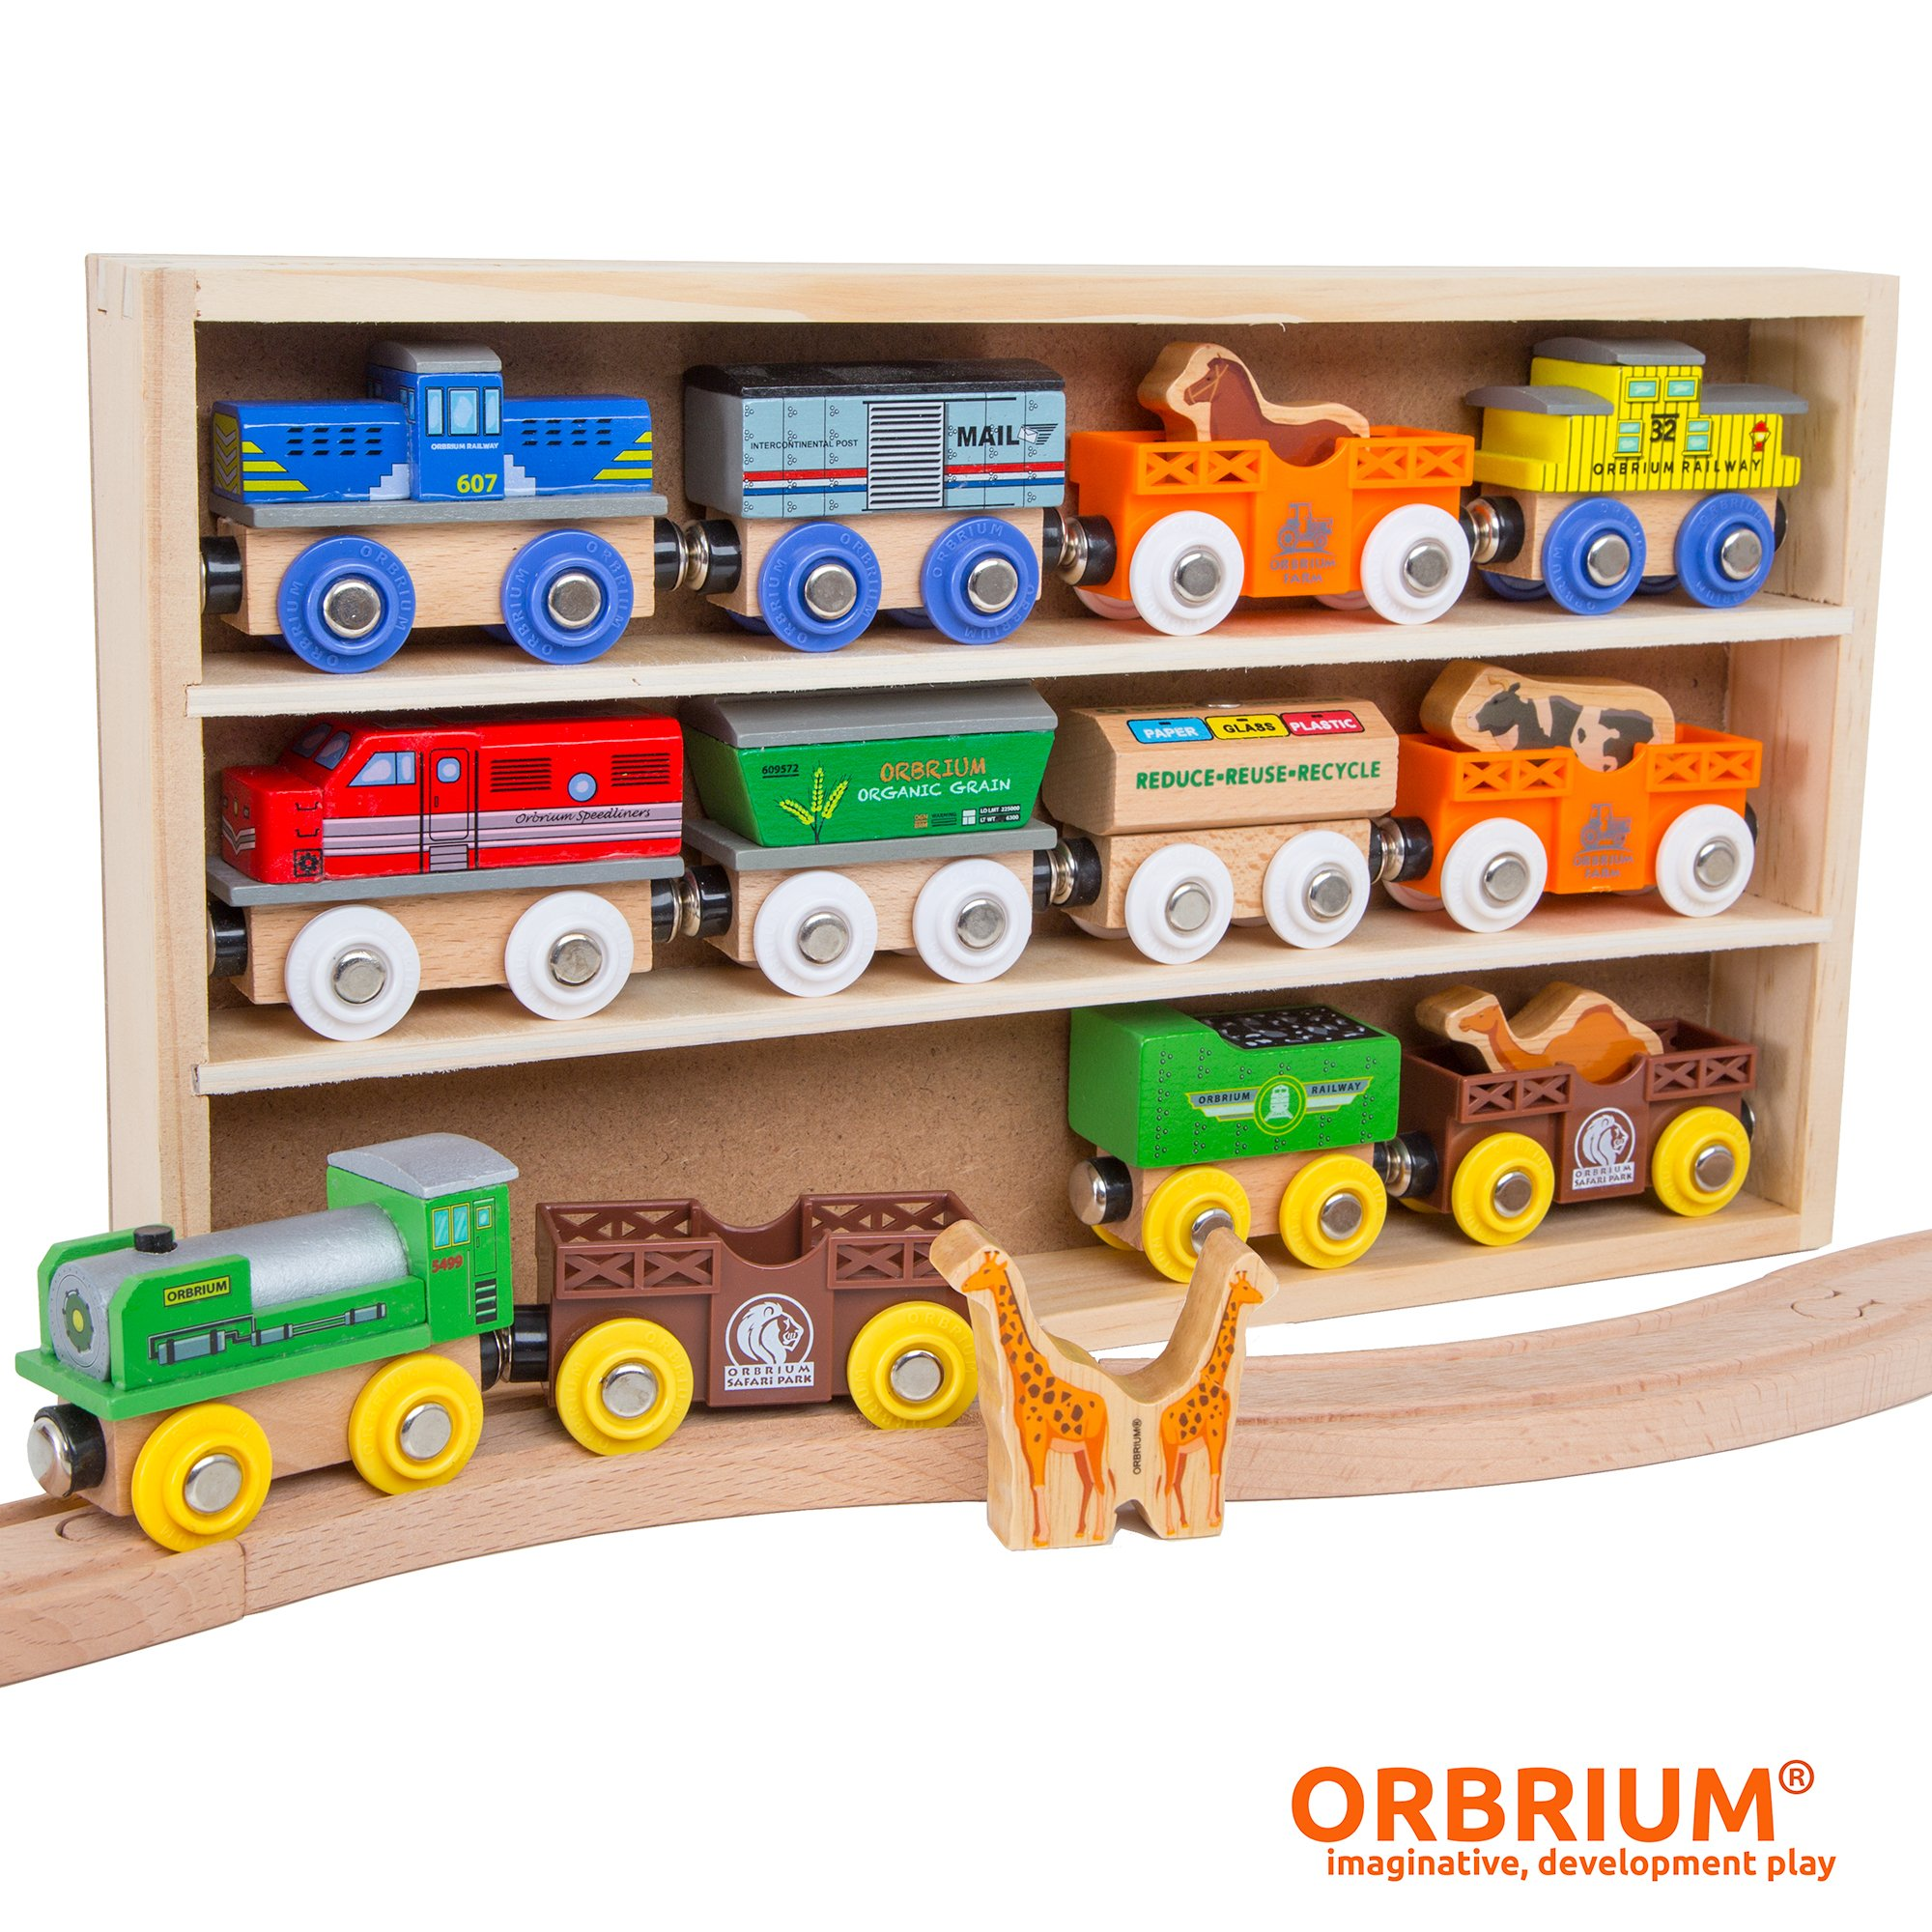 Orbrium Toys 12 (18 Pcs) Wooden Engines & Train Cars Collection with Animals, Farm Safari Zoo Wooden Animal Train Cars, Circus Wooden Train Compatible Thomas The Tank Engine, Brio, Chuggington by Orbrium